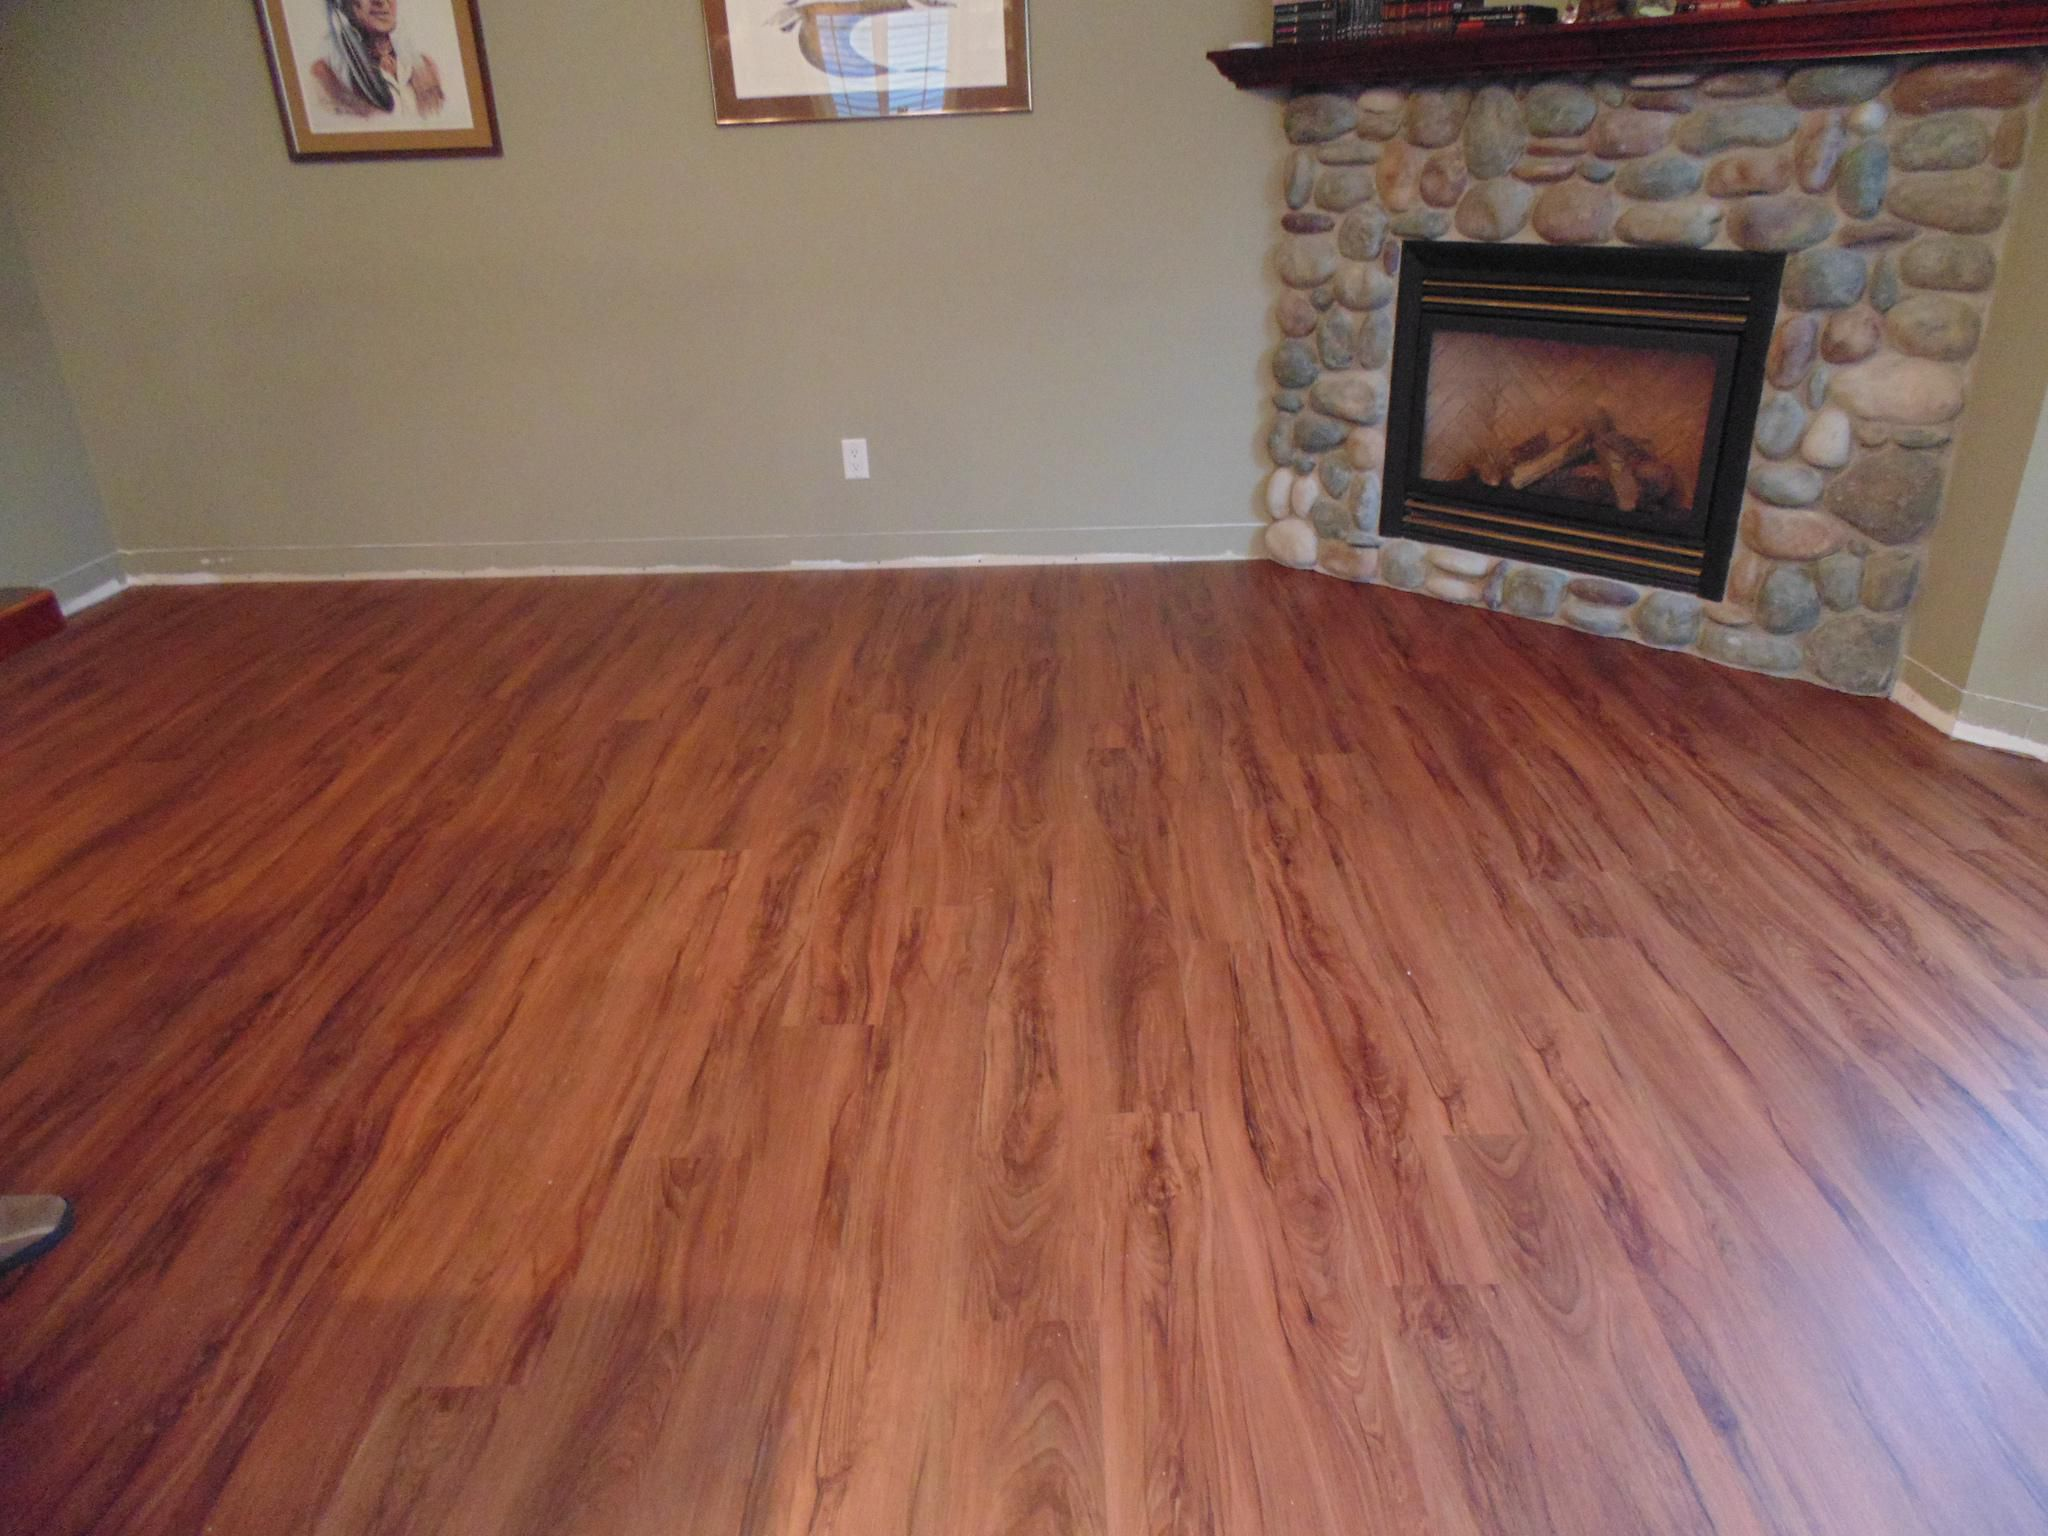 Best Of How to Install Vinyl Flooring On Concrete Basement